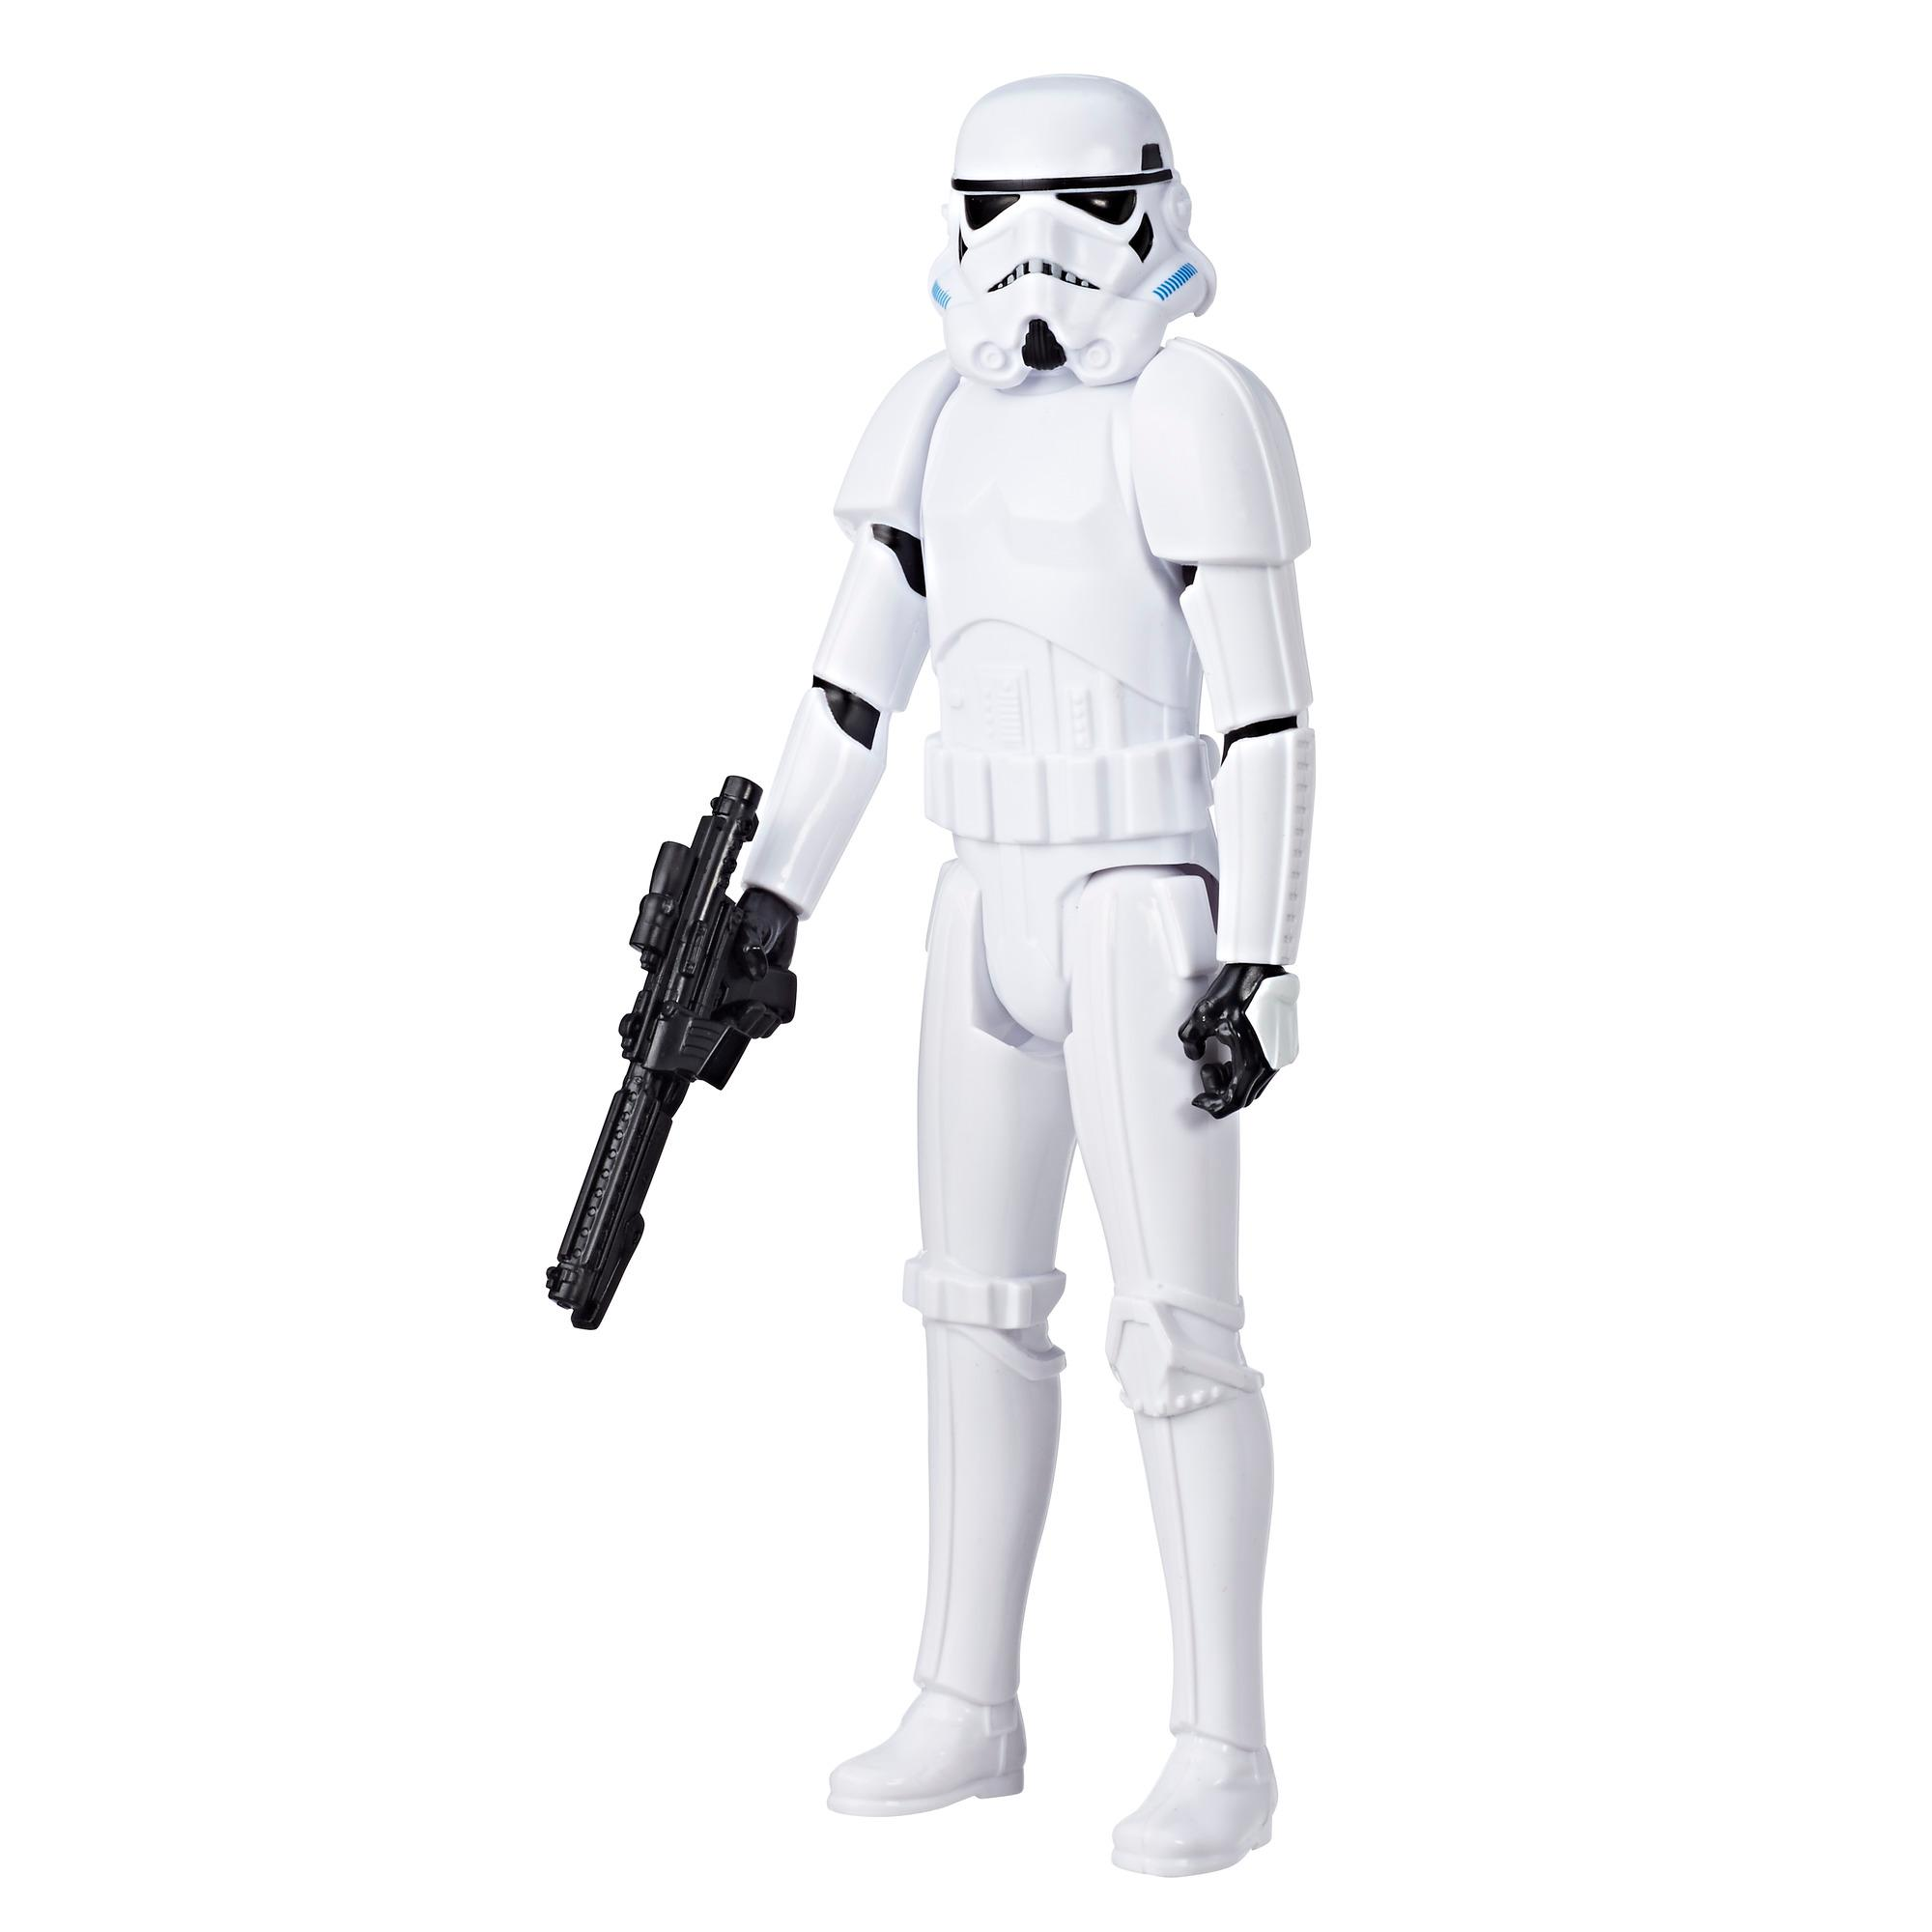 Star Wars: Rogue One 12-inch-scale Imperial Stormtrooper Figure